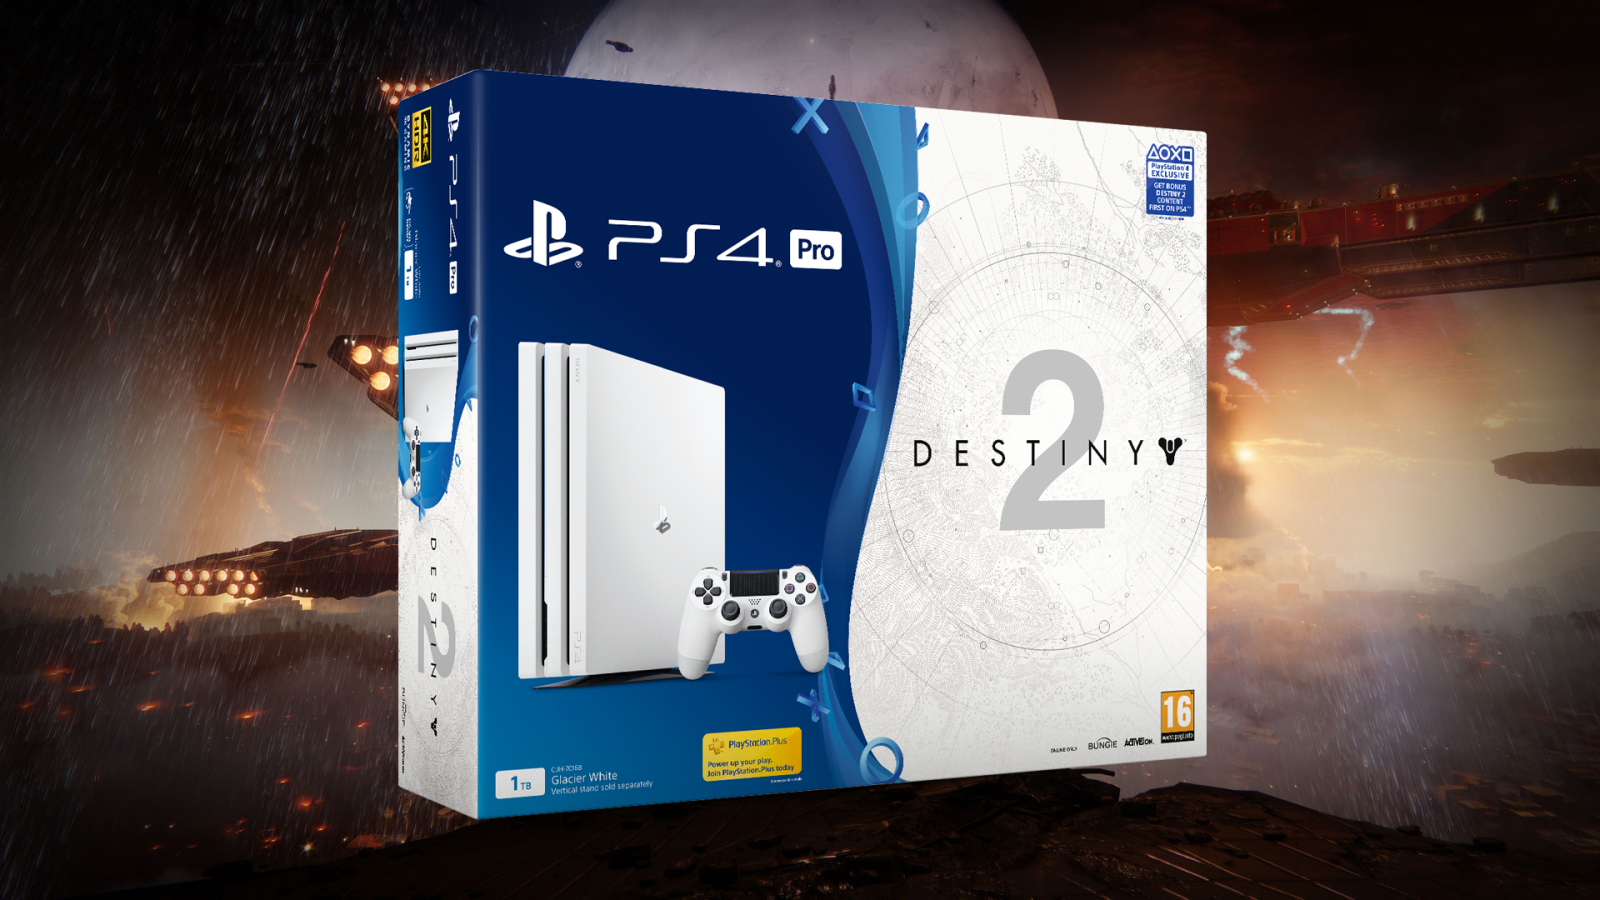 Uk Video Game Deals Xbox One S Destiny 2 Ps4 Bundle Overwatch Fallout 4 And More